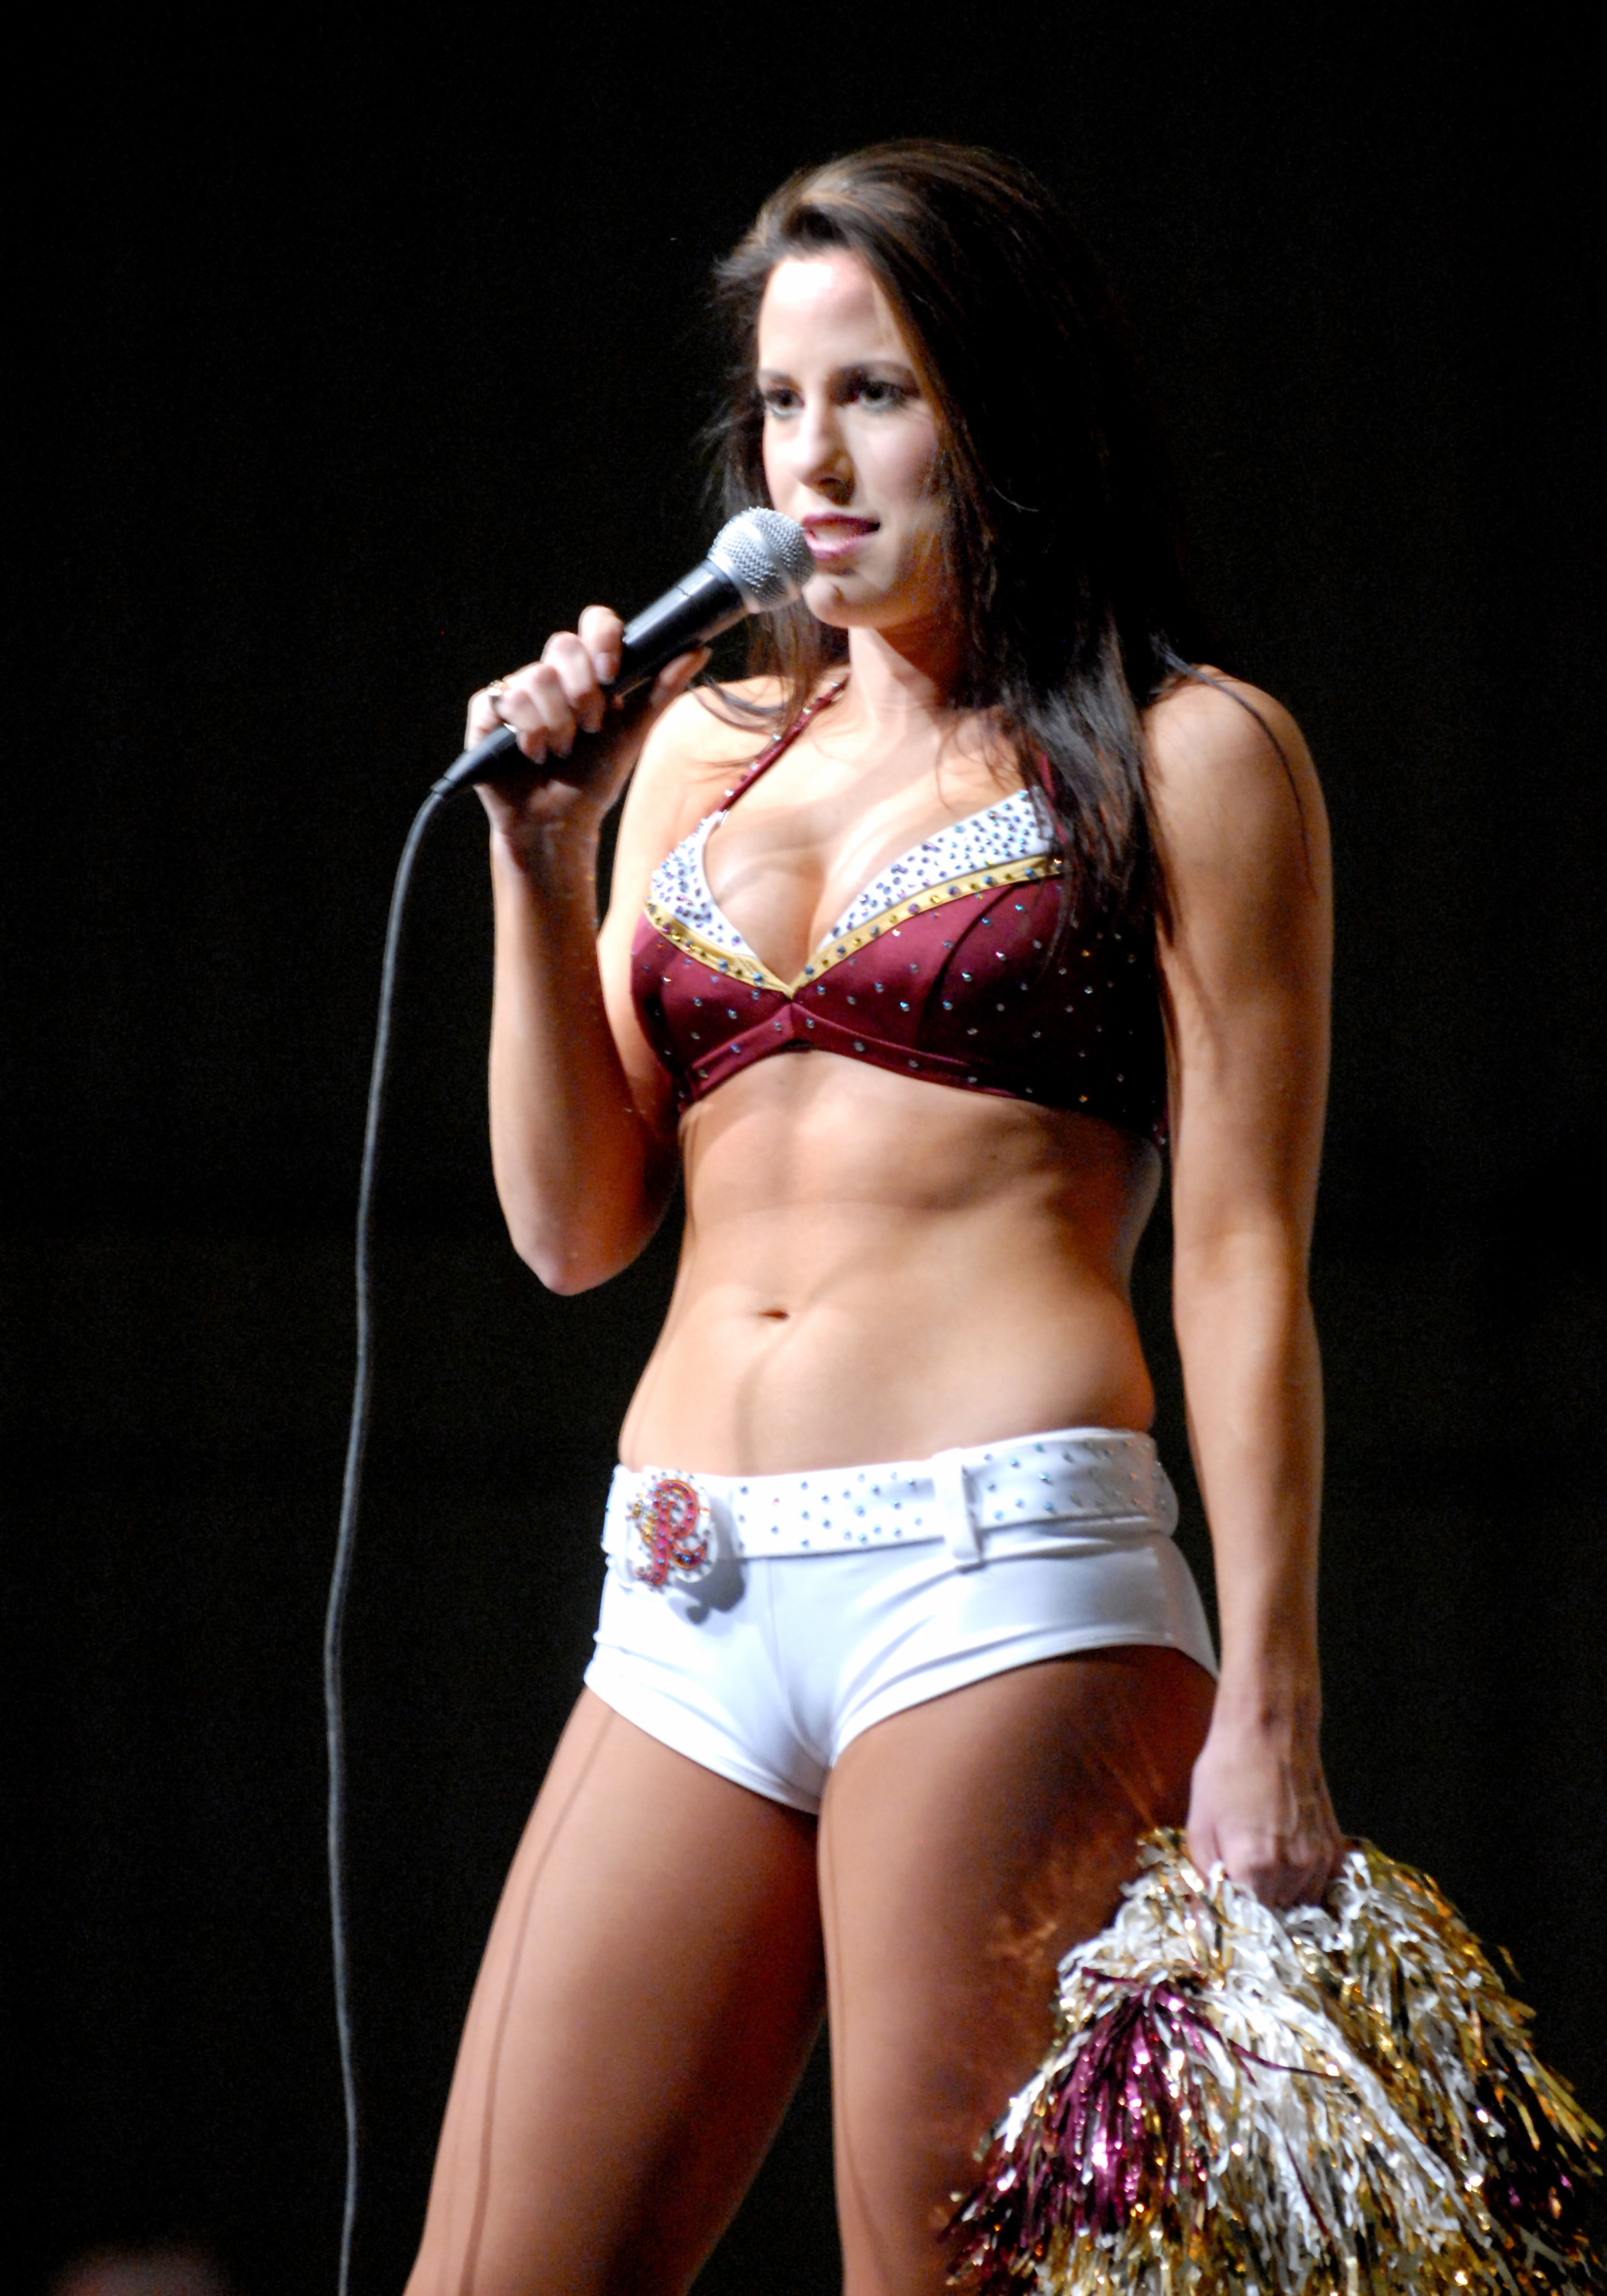 File:Redskins cheerleaders Iraq 3.jpg - Wikimedia Commons